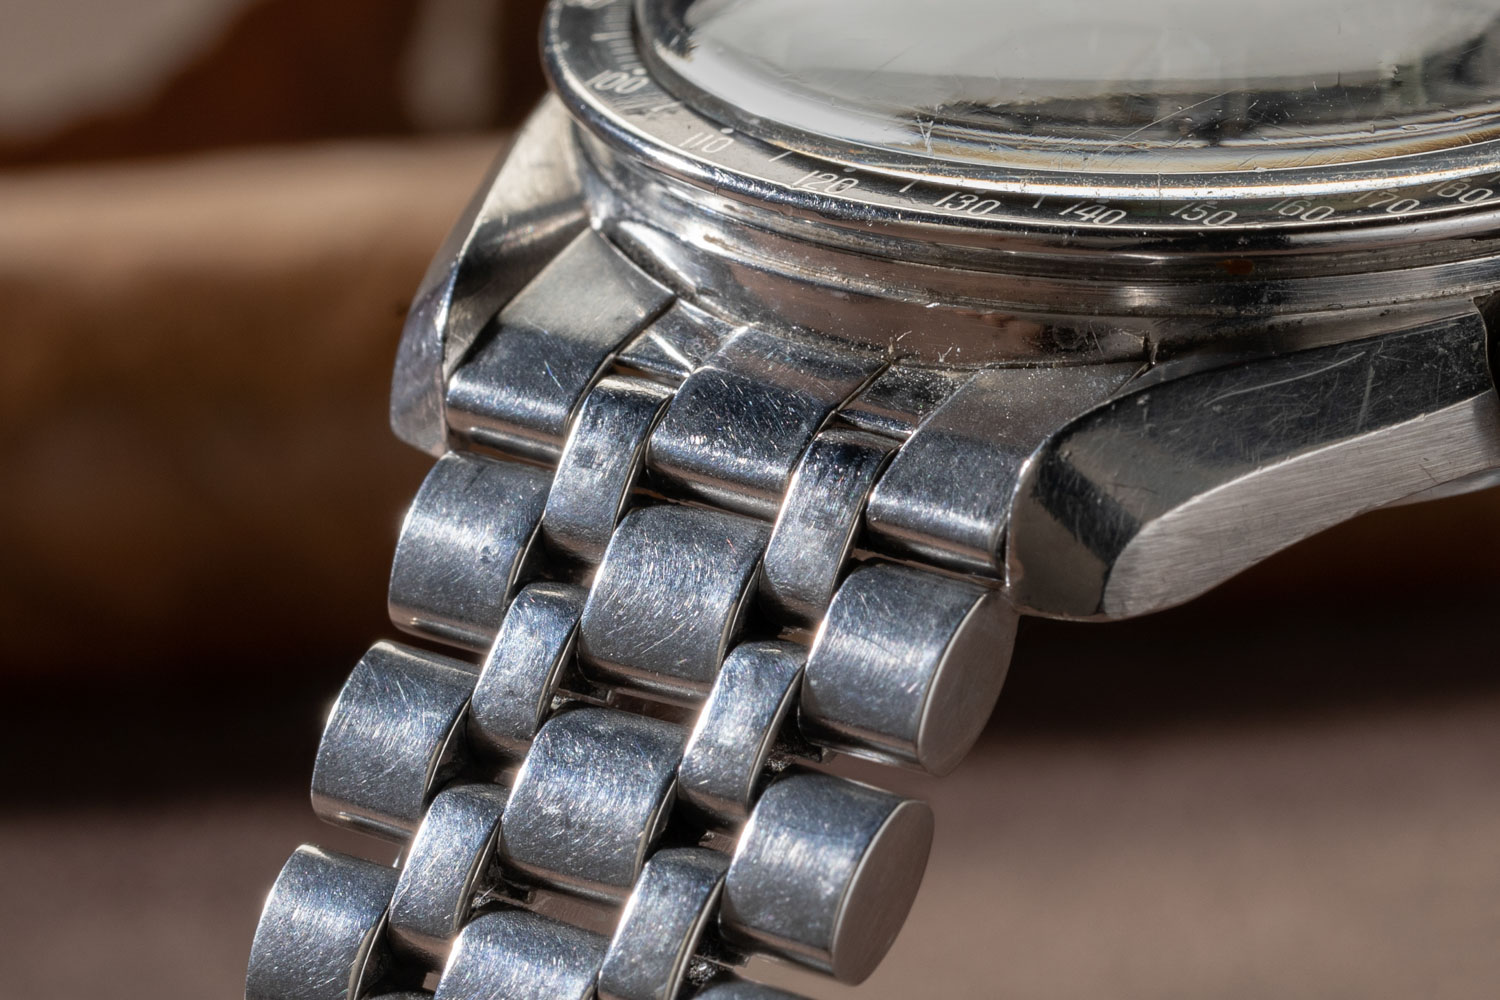 A closer look at the a Holzer bracelet on Revolution's Speedmaster Reference 145.012-67 Ultraman (Los Hombre Ultra), acquired from the Davidoff Brothers (©Revolution)